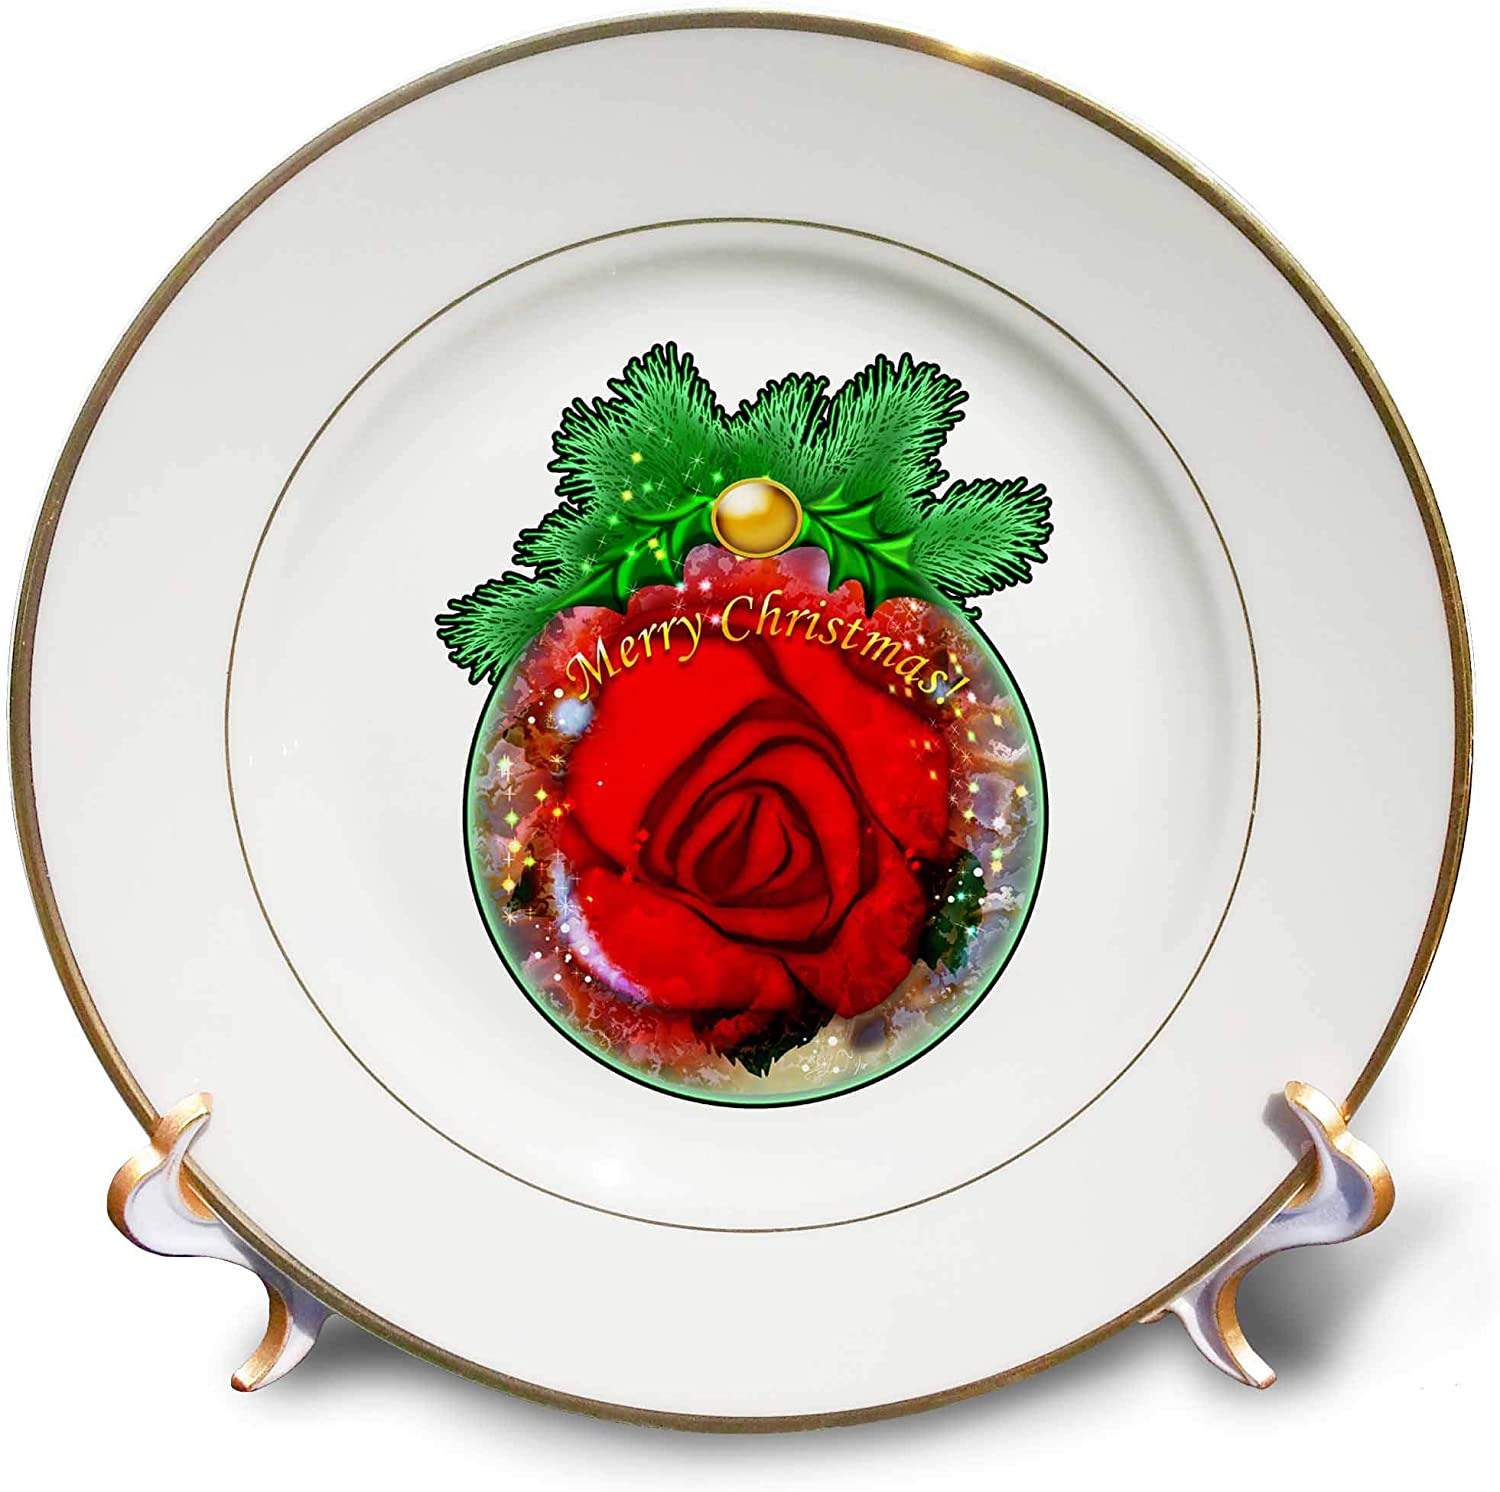 3dRose Dream Essence Designs-Holidays - Festive Christmas Ornament with red Rose Inside, Digital Art - 8 inch Porcelain Plate (cp_324471_1)